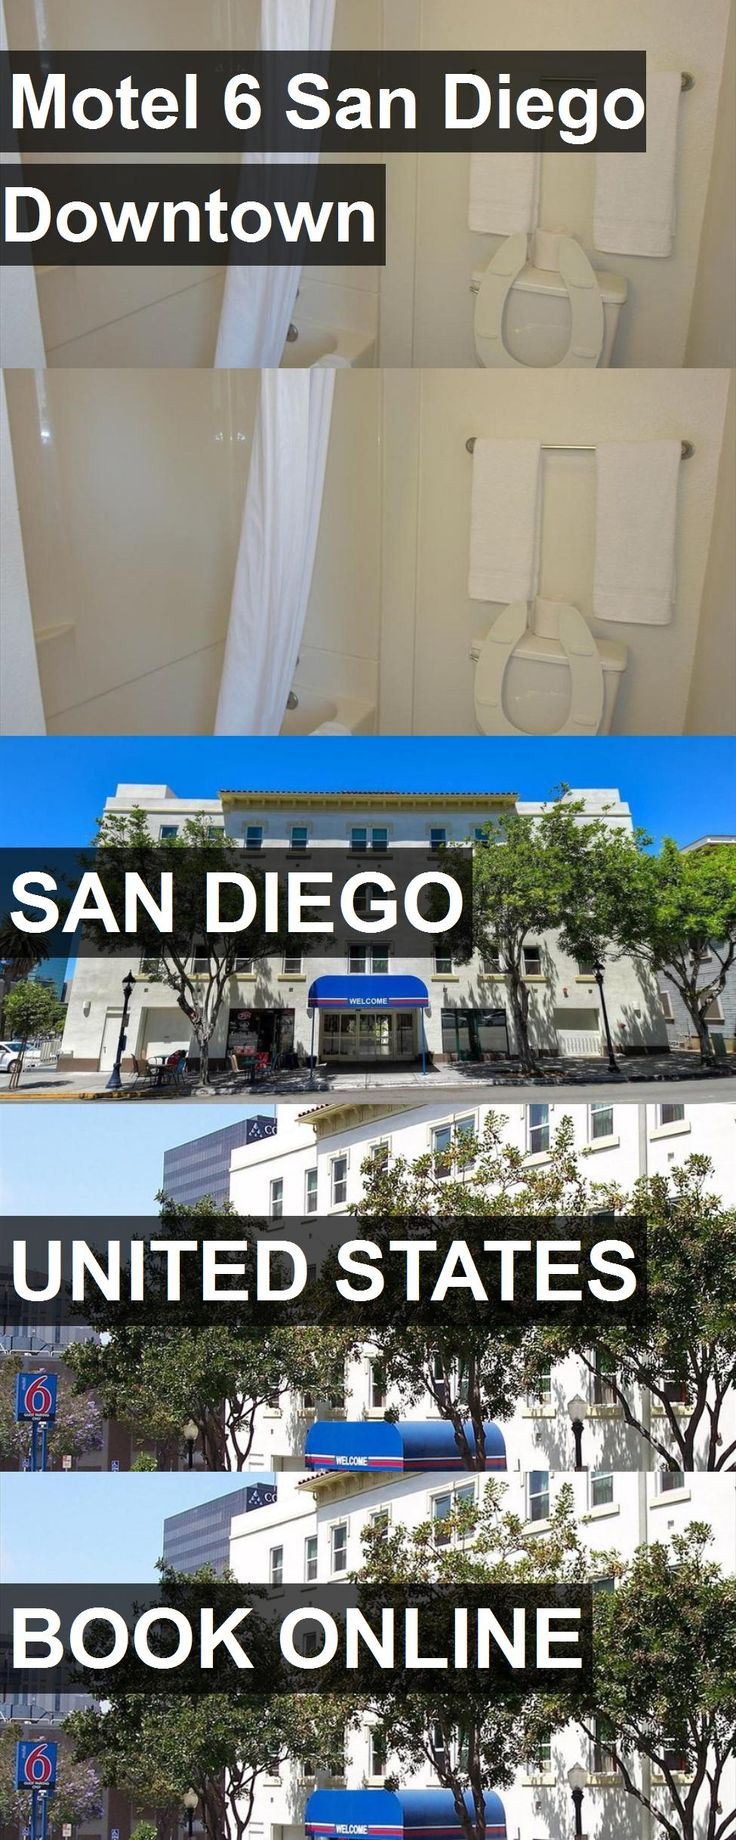 Hotel Motel 6 San Diego Downtown in San Diego, United States. For more information, photos, reviews and best prices please follow the link. #UnitedStates #SanDiego #travel #vacation #hotel